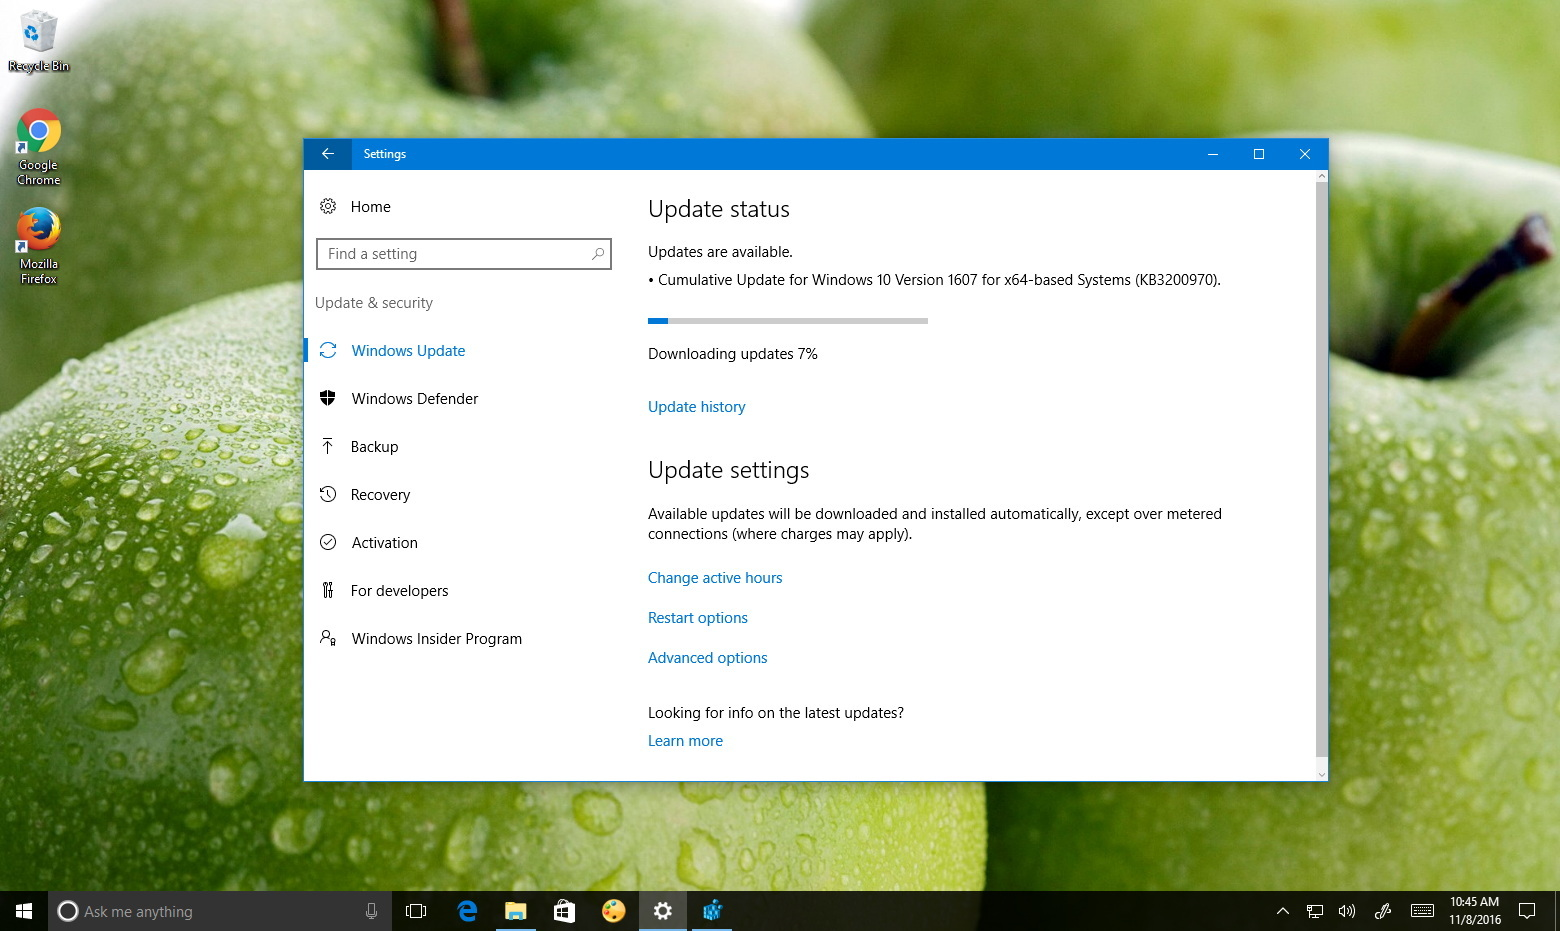 kb3200970 update for Windows 10